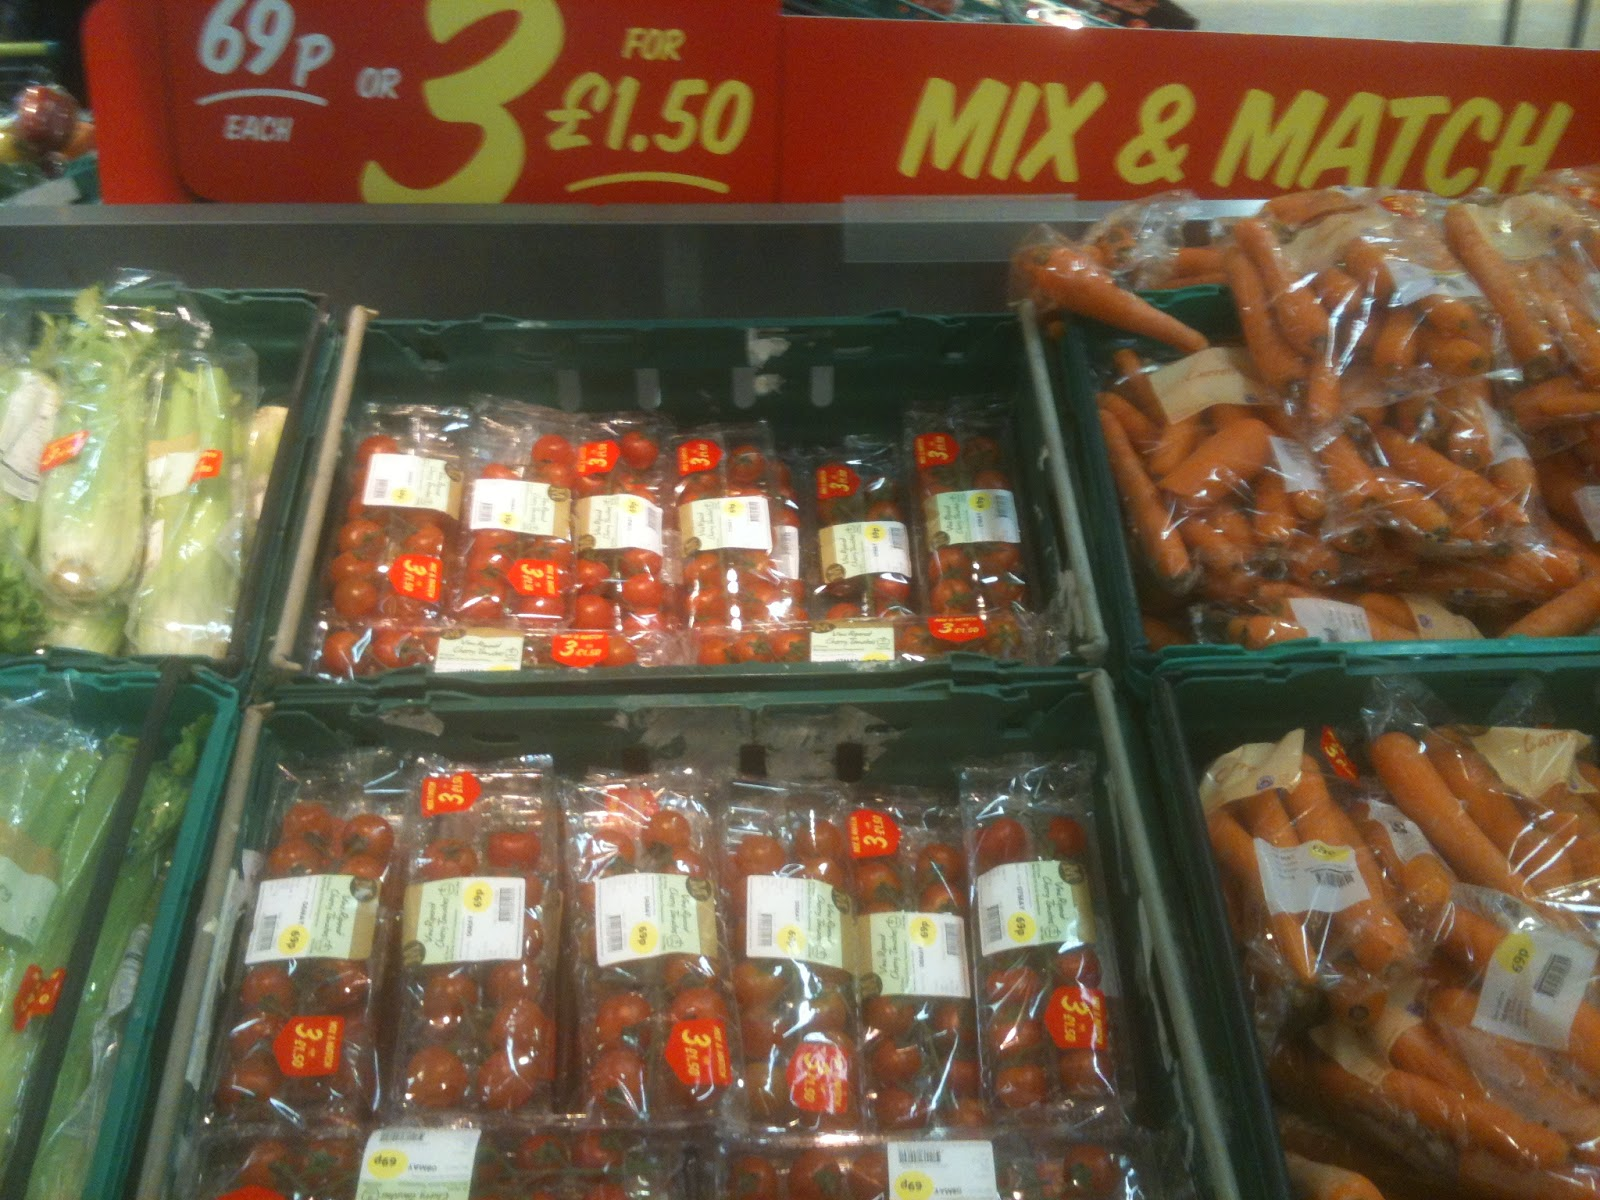 69p and 3 for £1.50 offers in fruit and veg at Morrisons